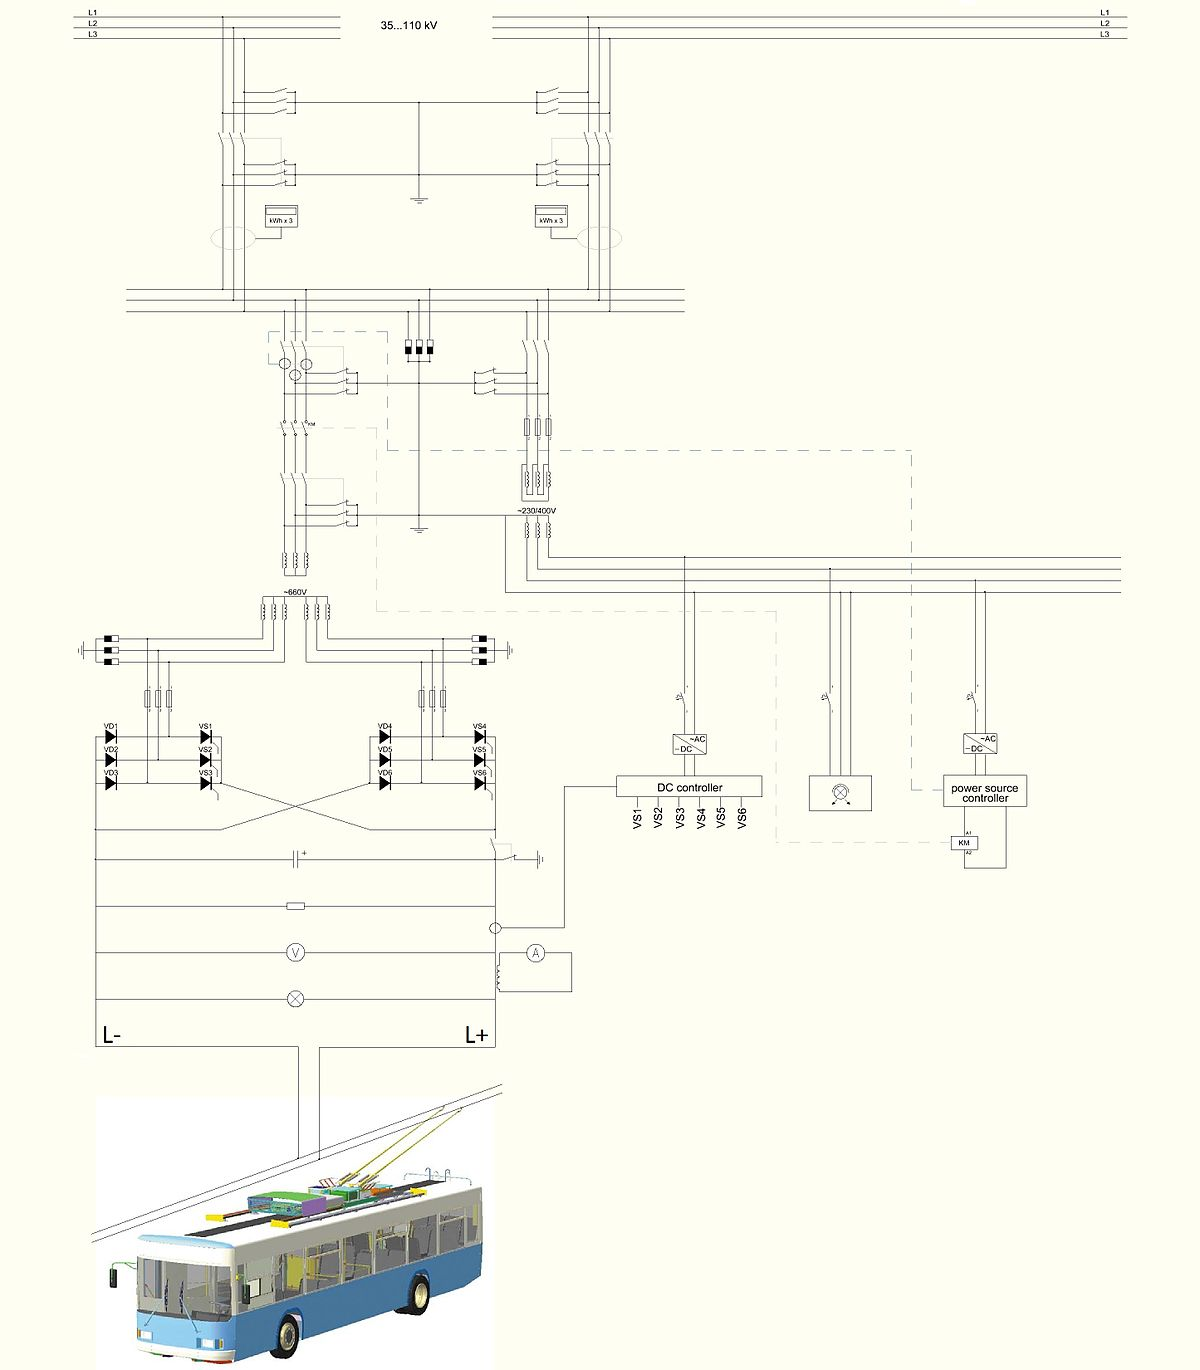 File:Wiring diagram of trolleybus traction substation for